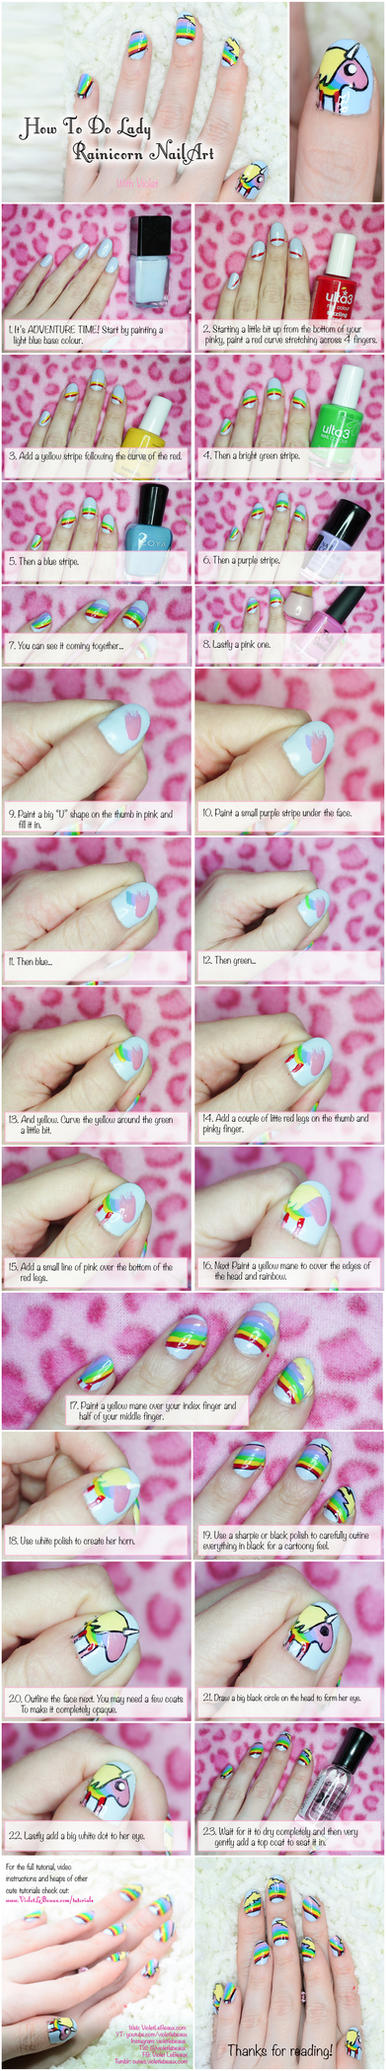 Lady Rainicorn Nailart - Adventure Time Tutorial by VioletLeBeaux